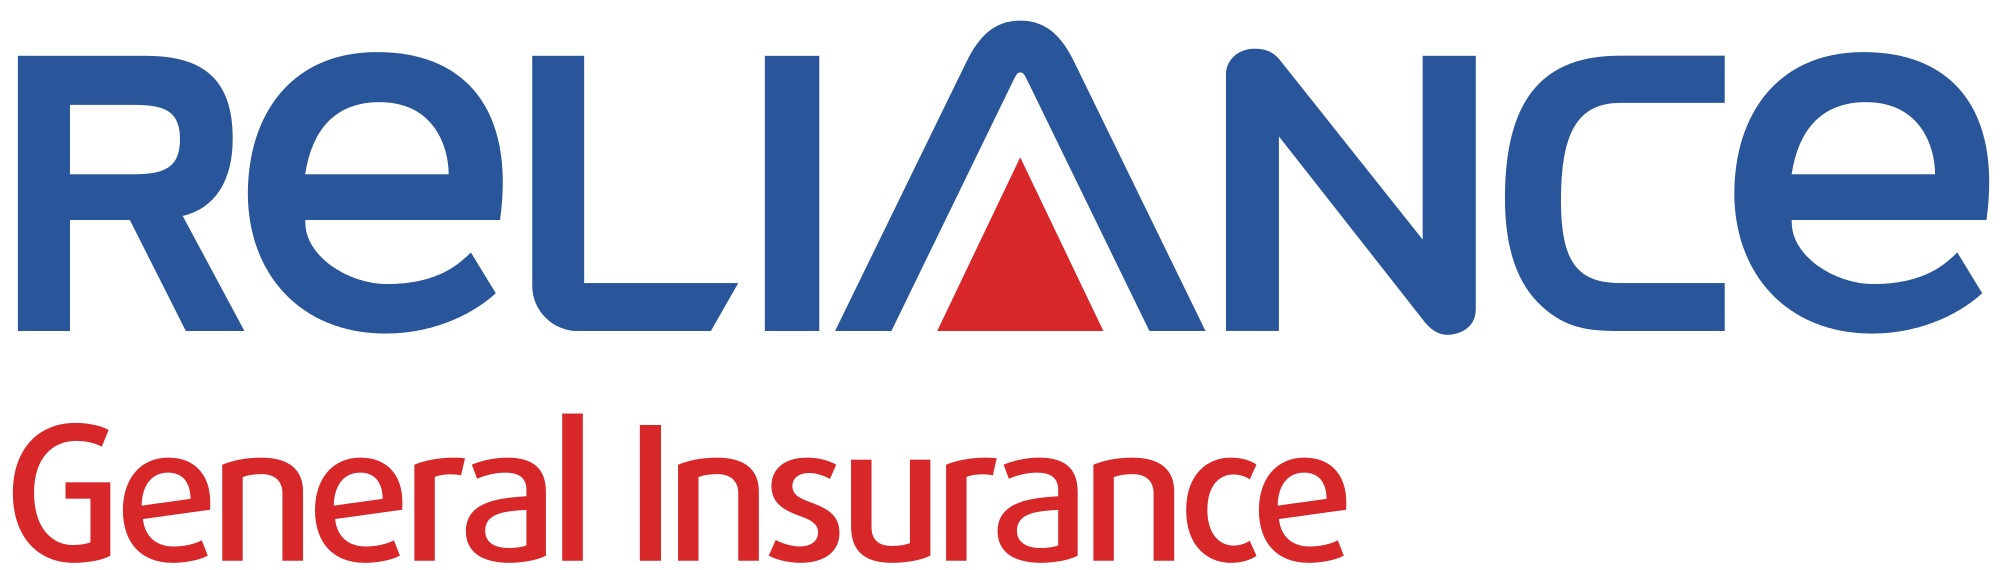 Image of: Motor Reliancegeneralinsurance Fincash Reliance General Insurance Company Limited Reliance Car Insurance